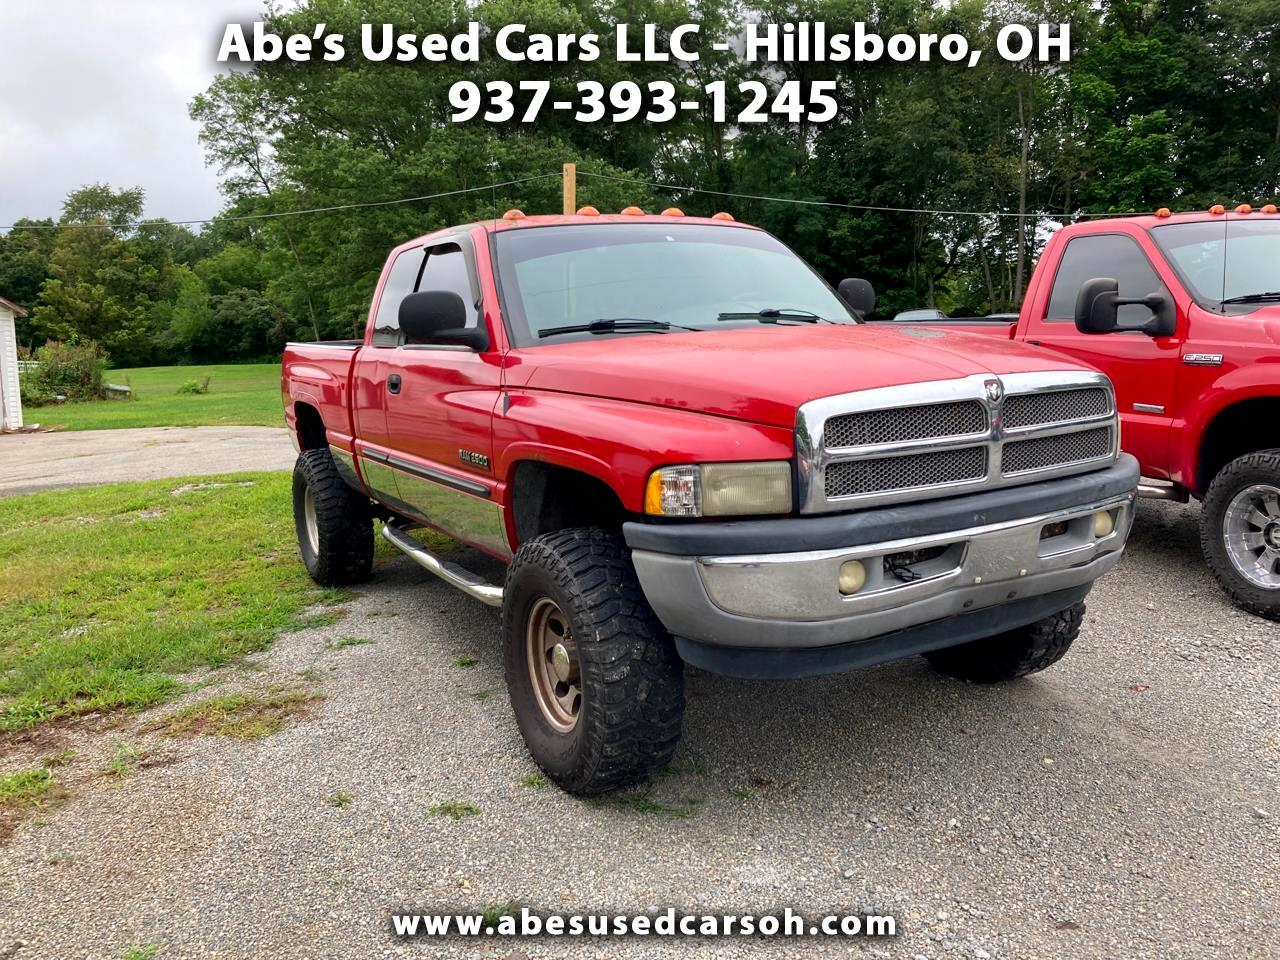 Used 2002 Dodge Ram 2500 St Quad Cab Short Bed 4wd For Sale In Hillsboro Oh 45133 Abe S Used Cars Llc